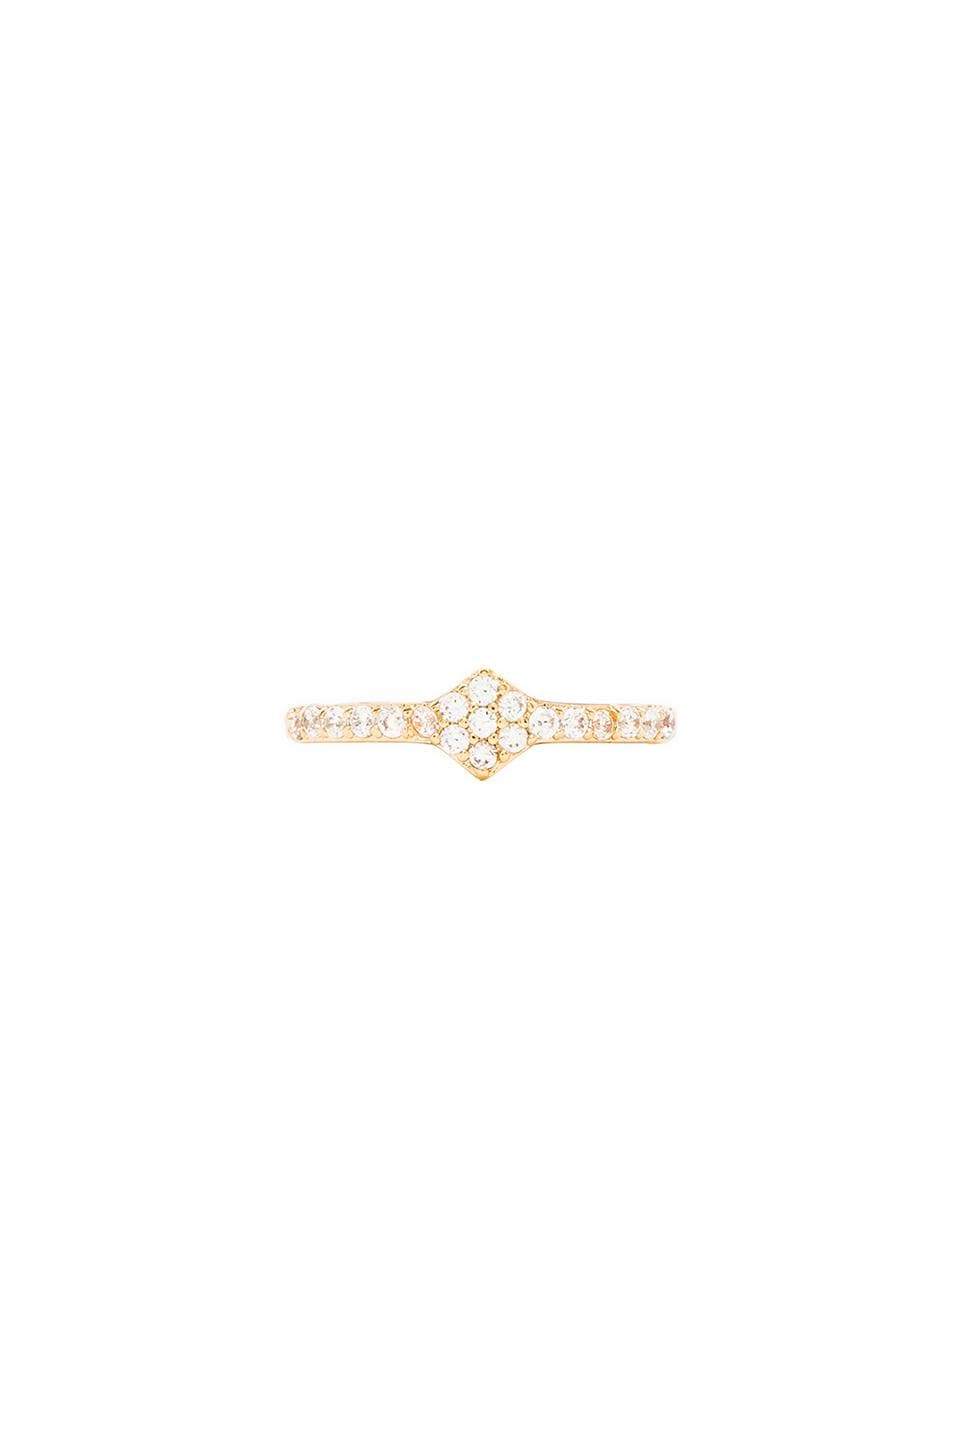 gorjana Delano Ring in Gold